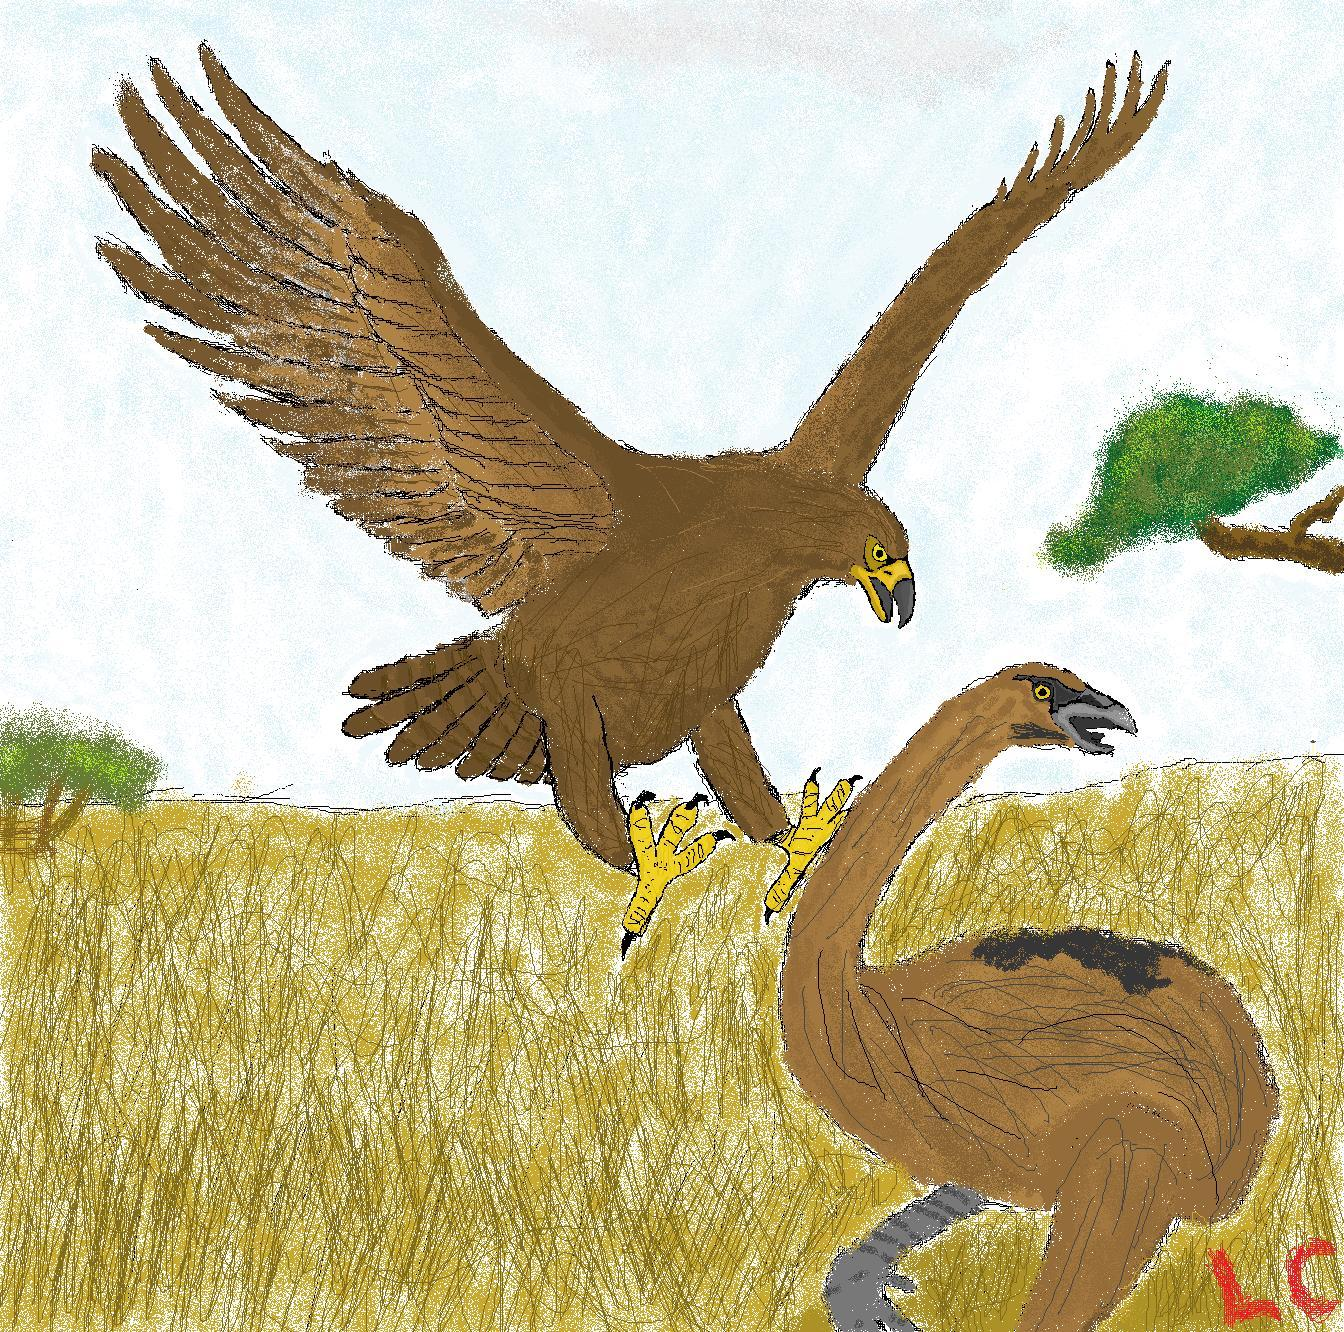 MS Paint: Haast Eagle attacks Moa by ZEECAPTEIN on DeviantArt